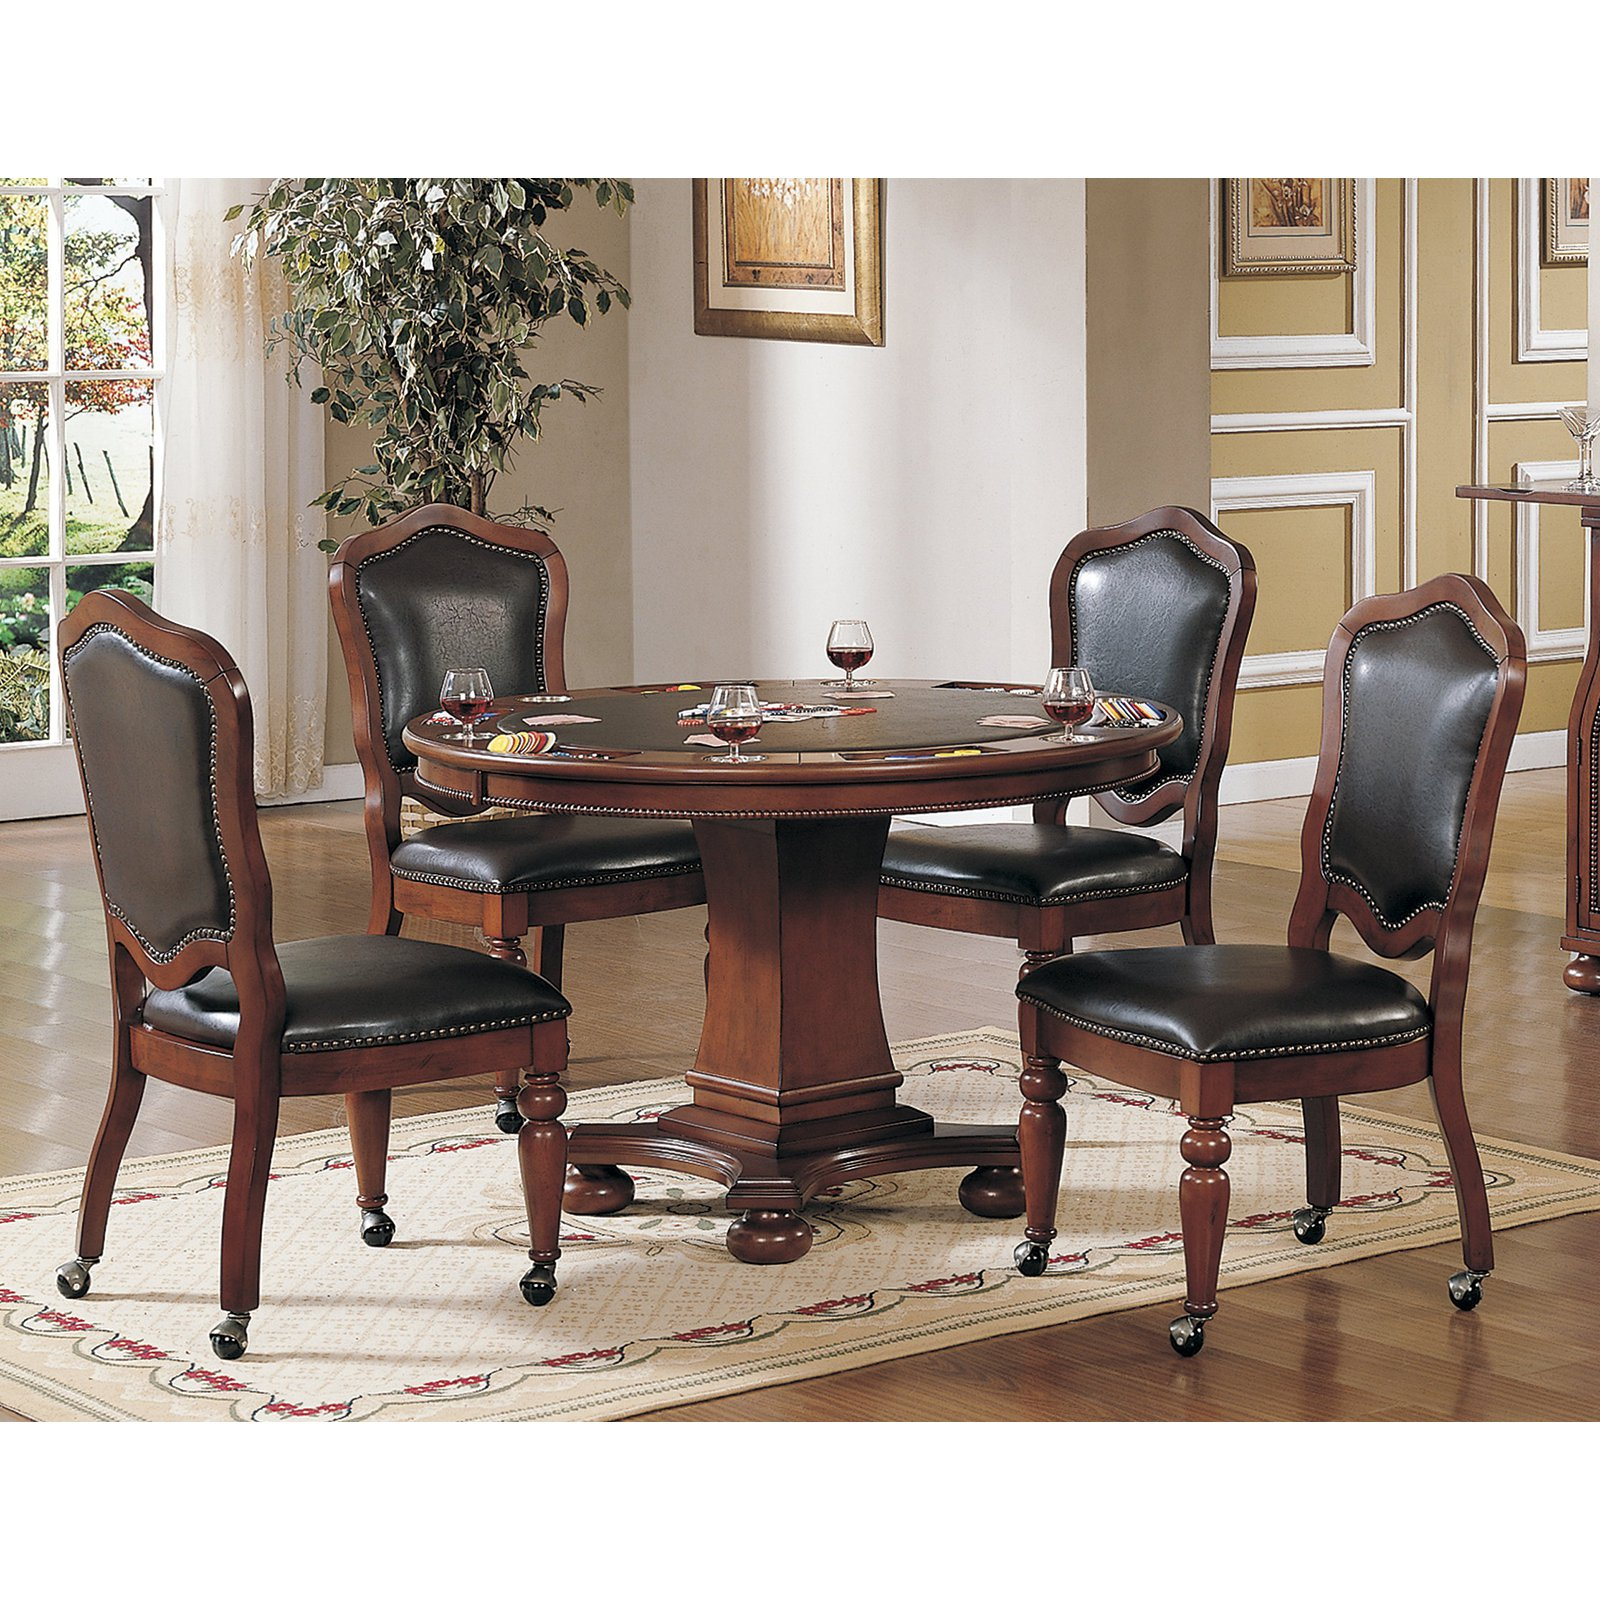 Sunset Trading 5 Piece Bellagio Dining & Game Table Set by